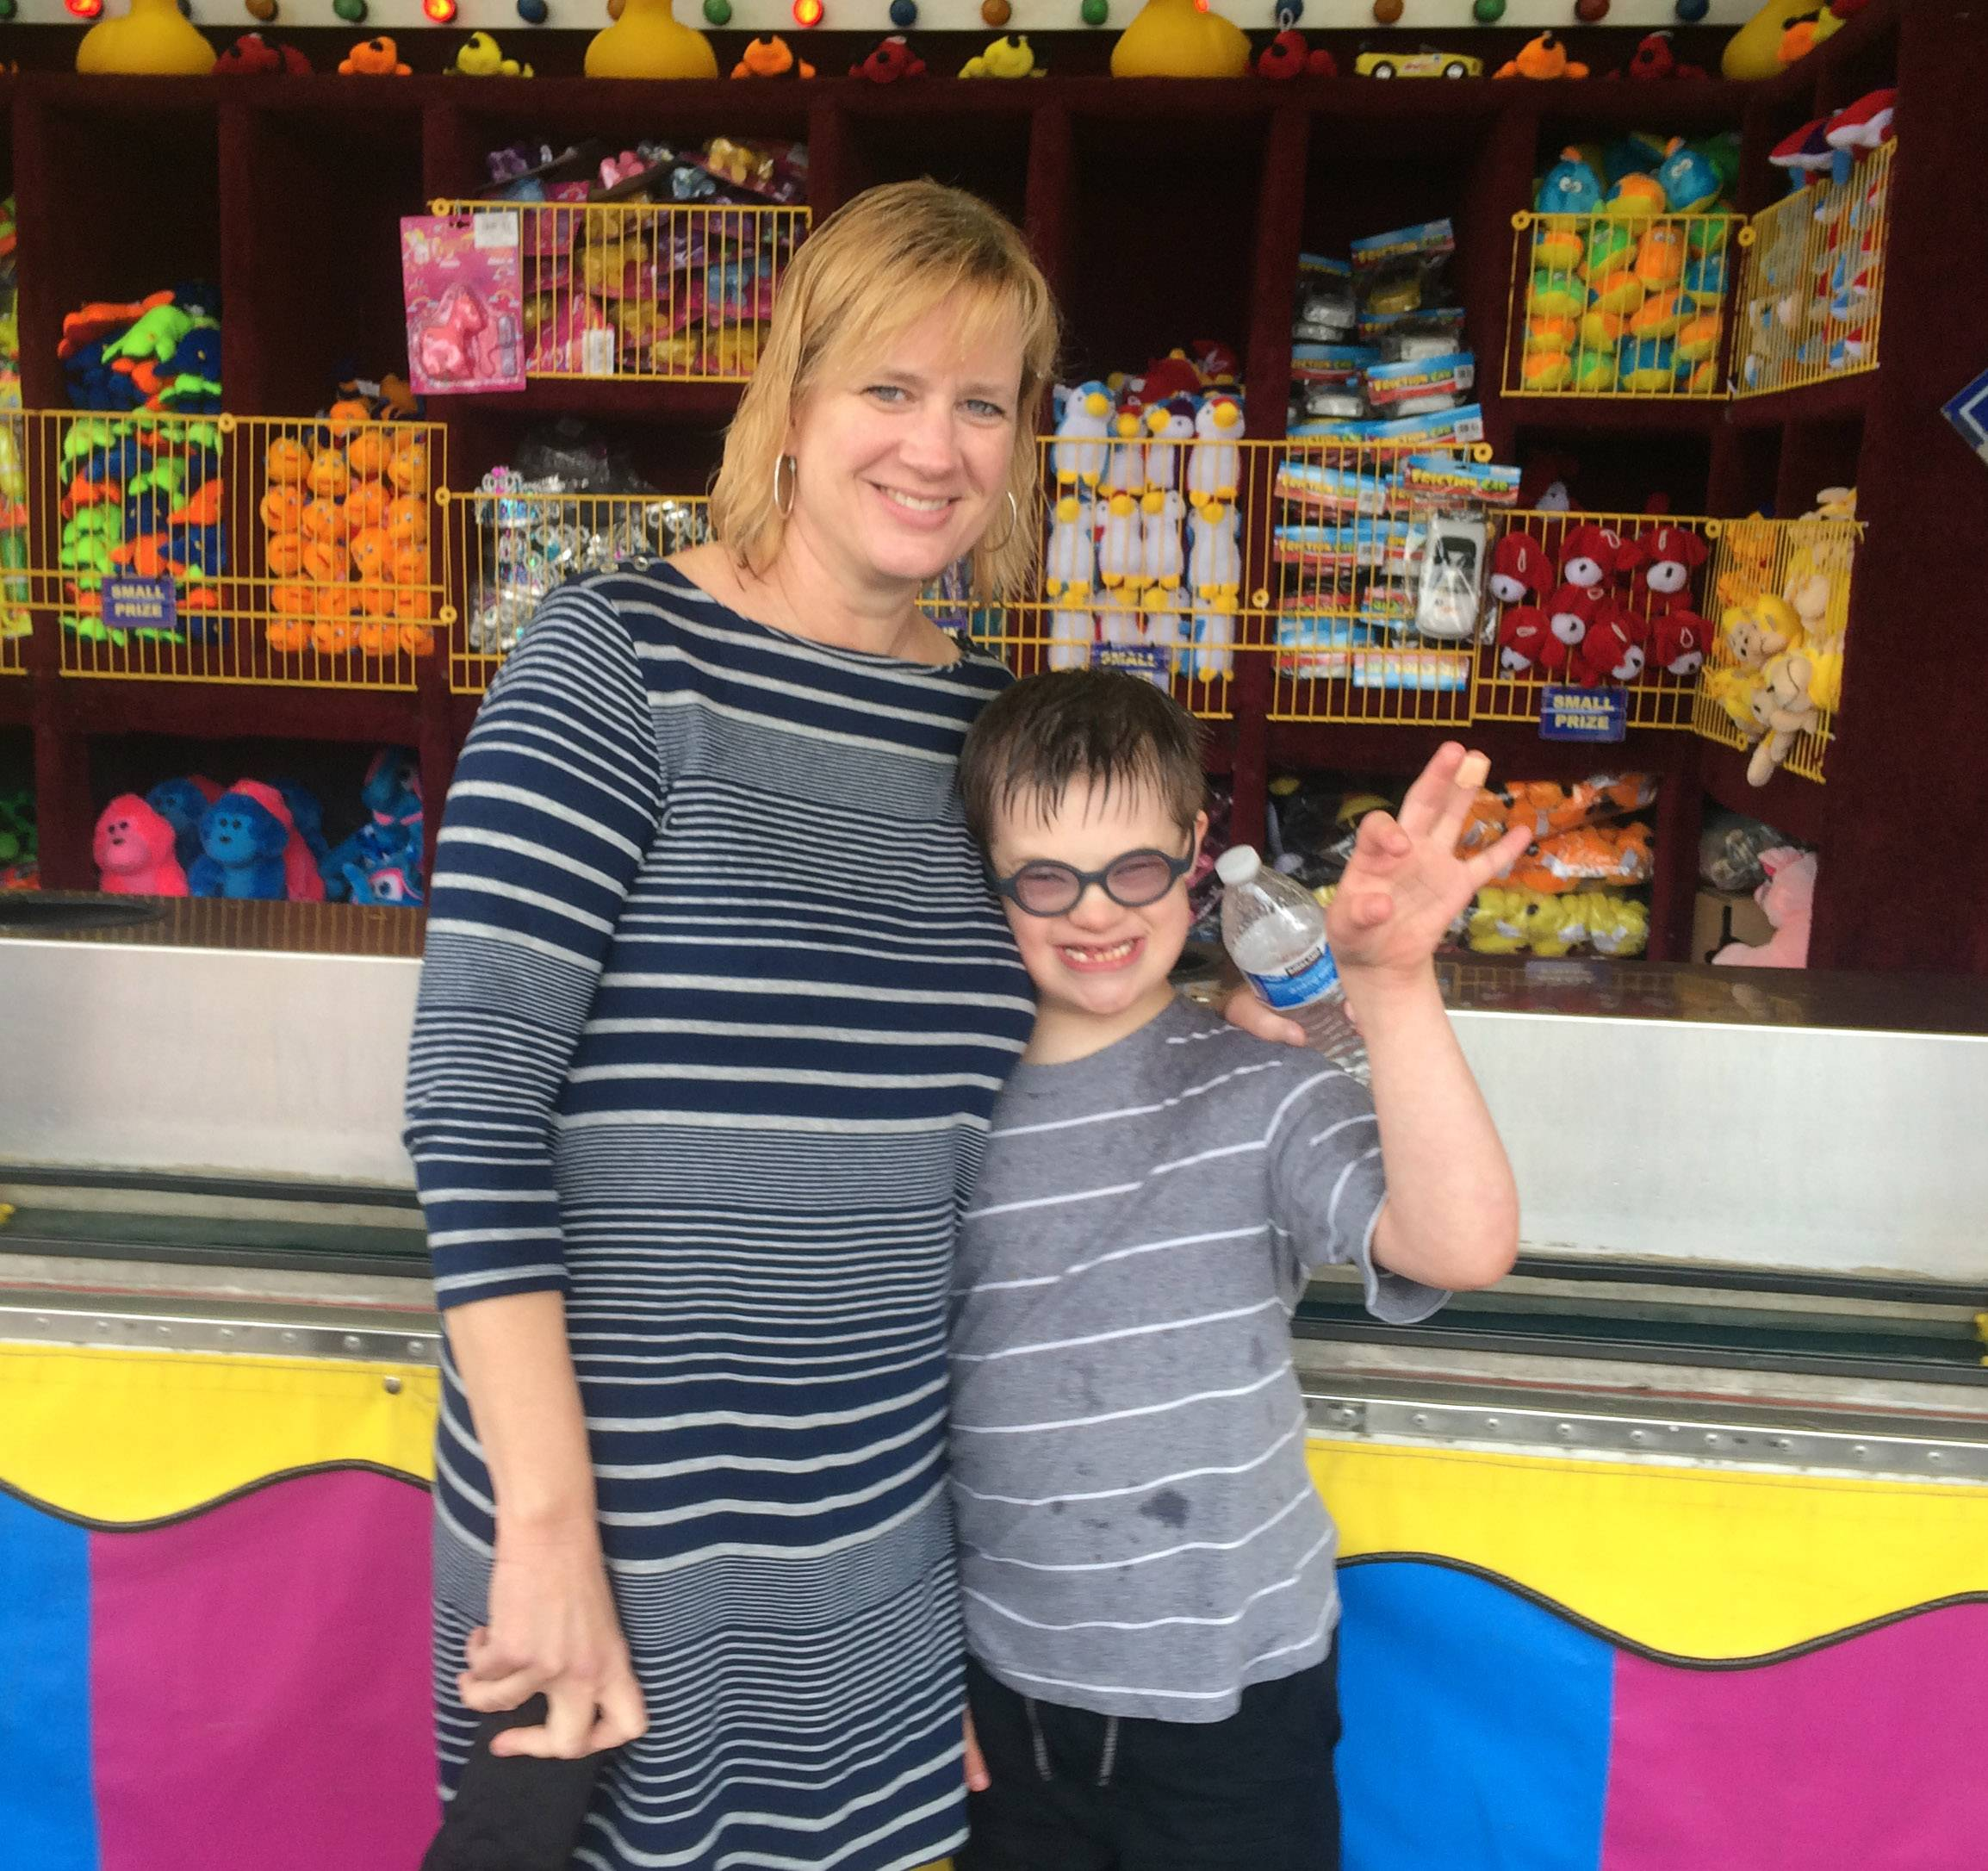 Amy Barker of Palatine attends the Palatine Jaycees' 57th Hometown Fest with her son Colin.